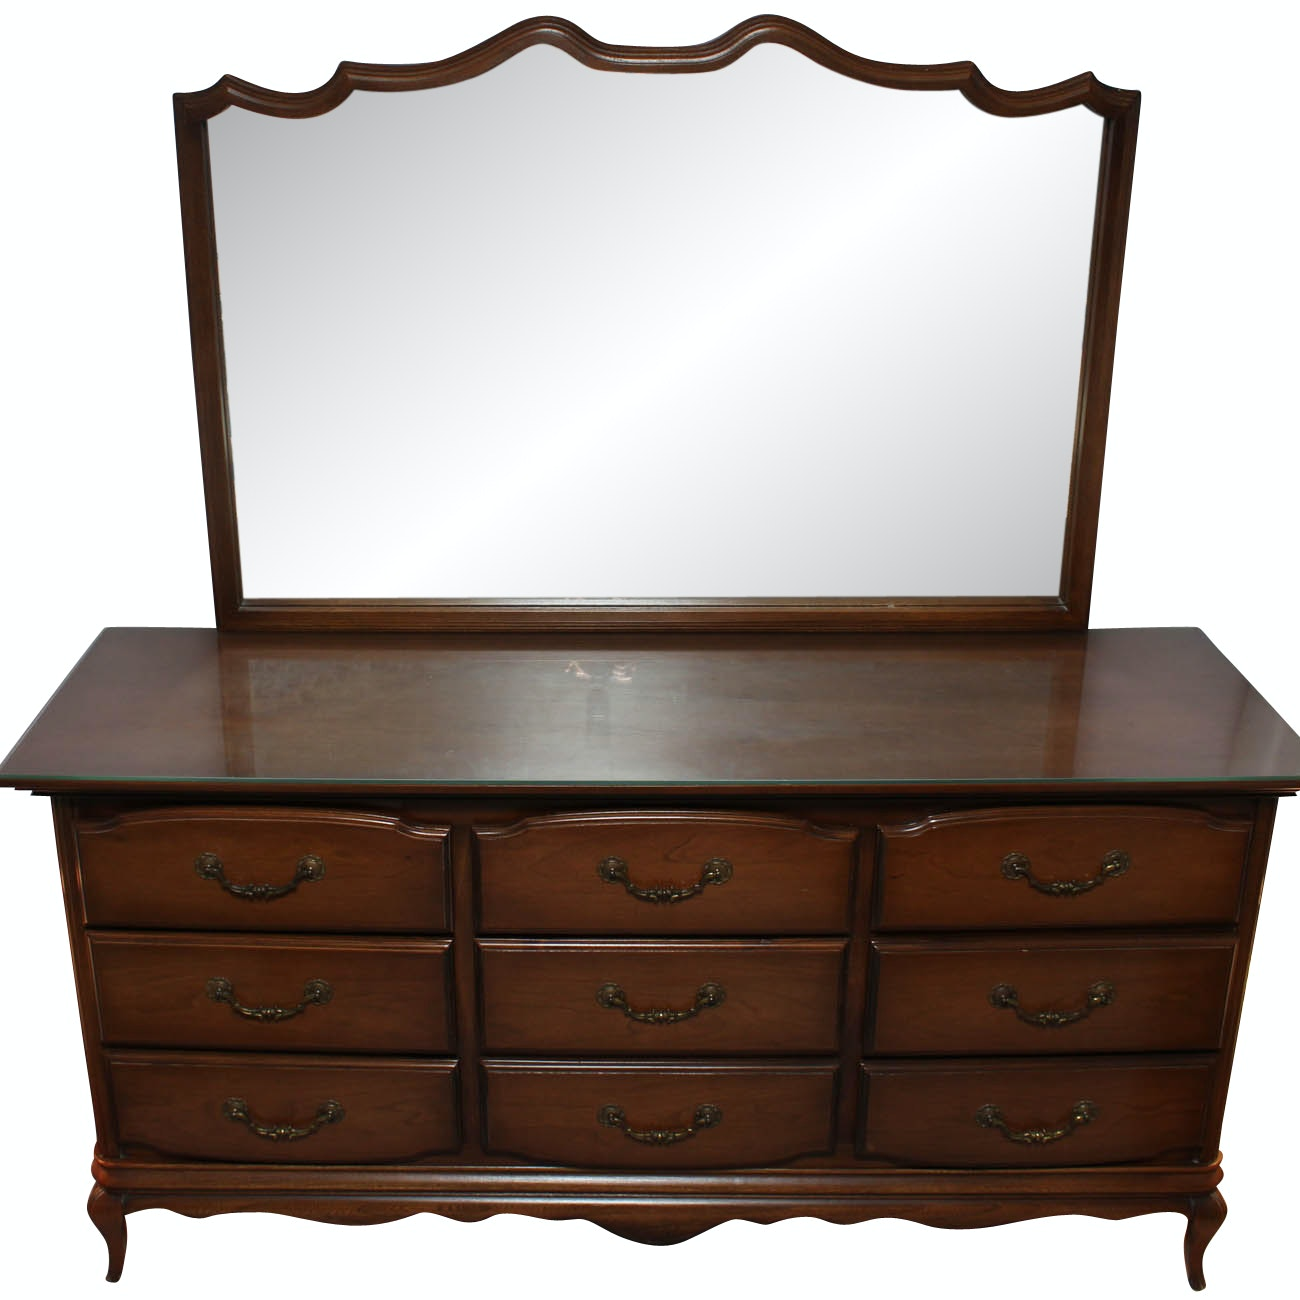 Hooker Furniture Chest of Drawers with Mirror